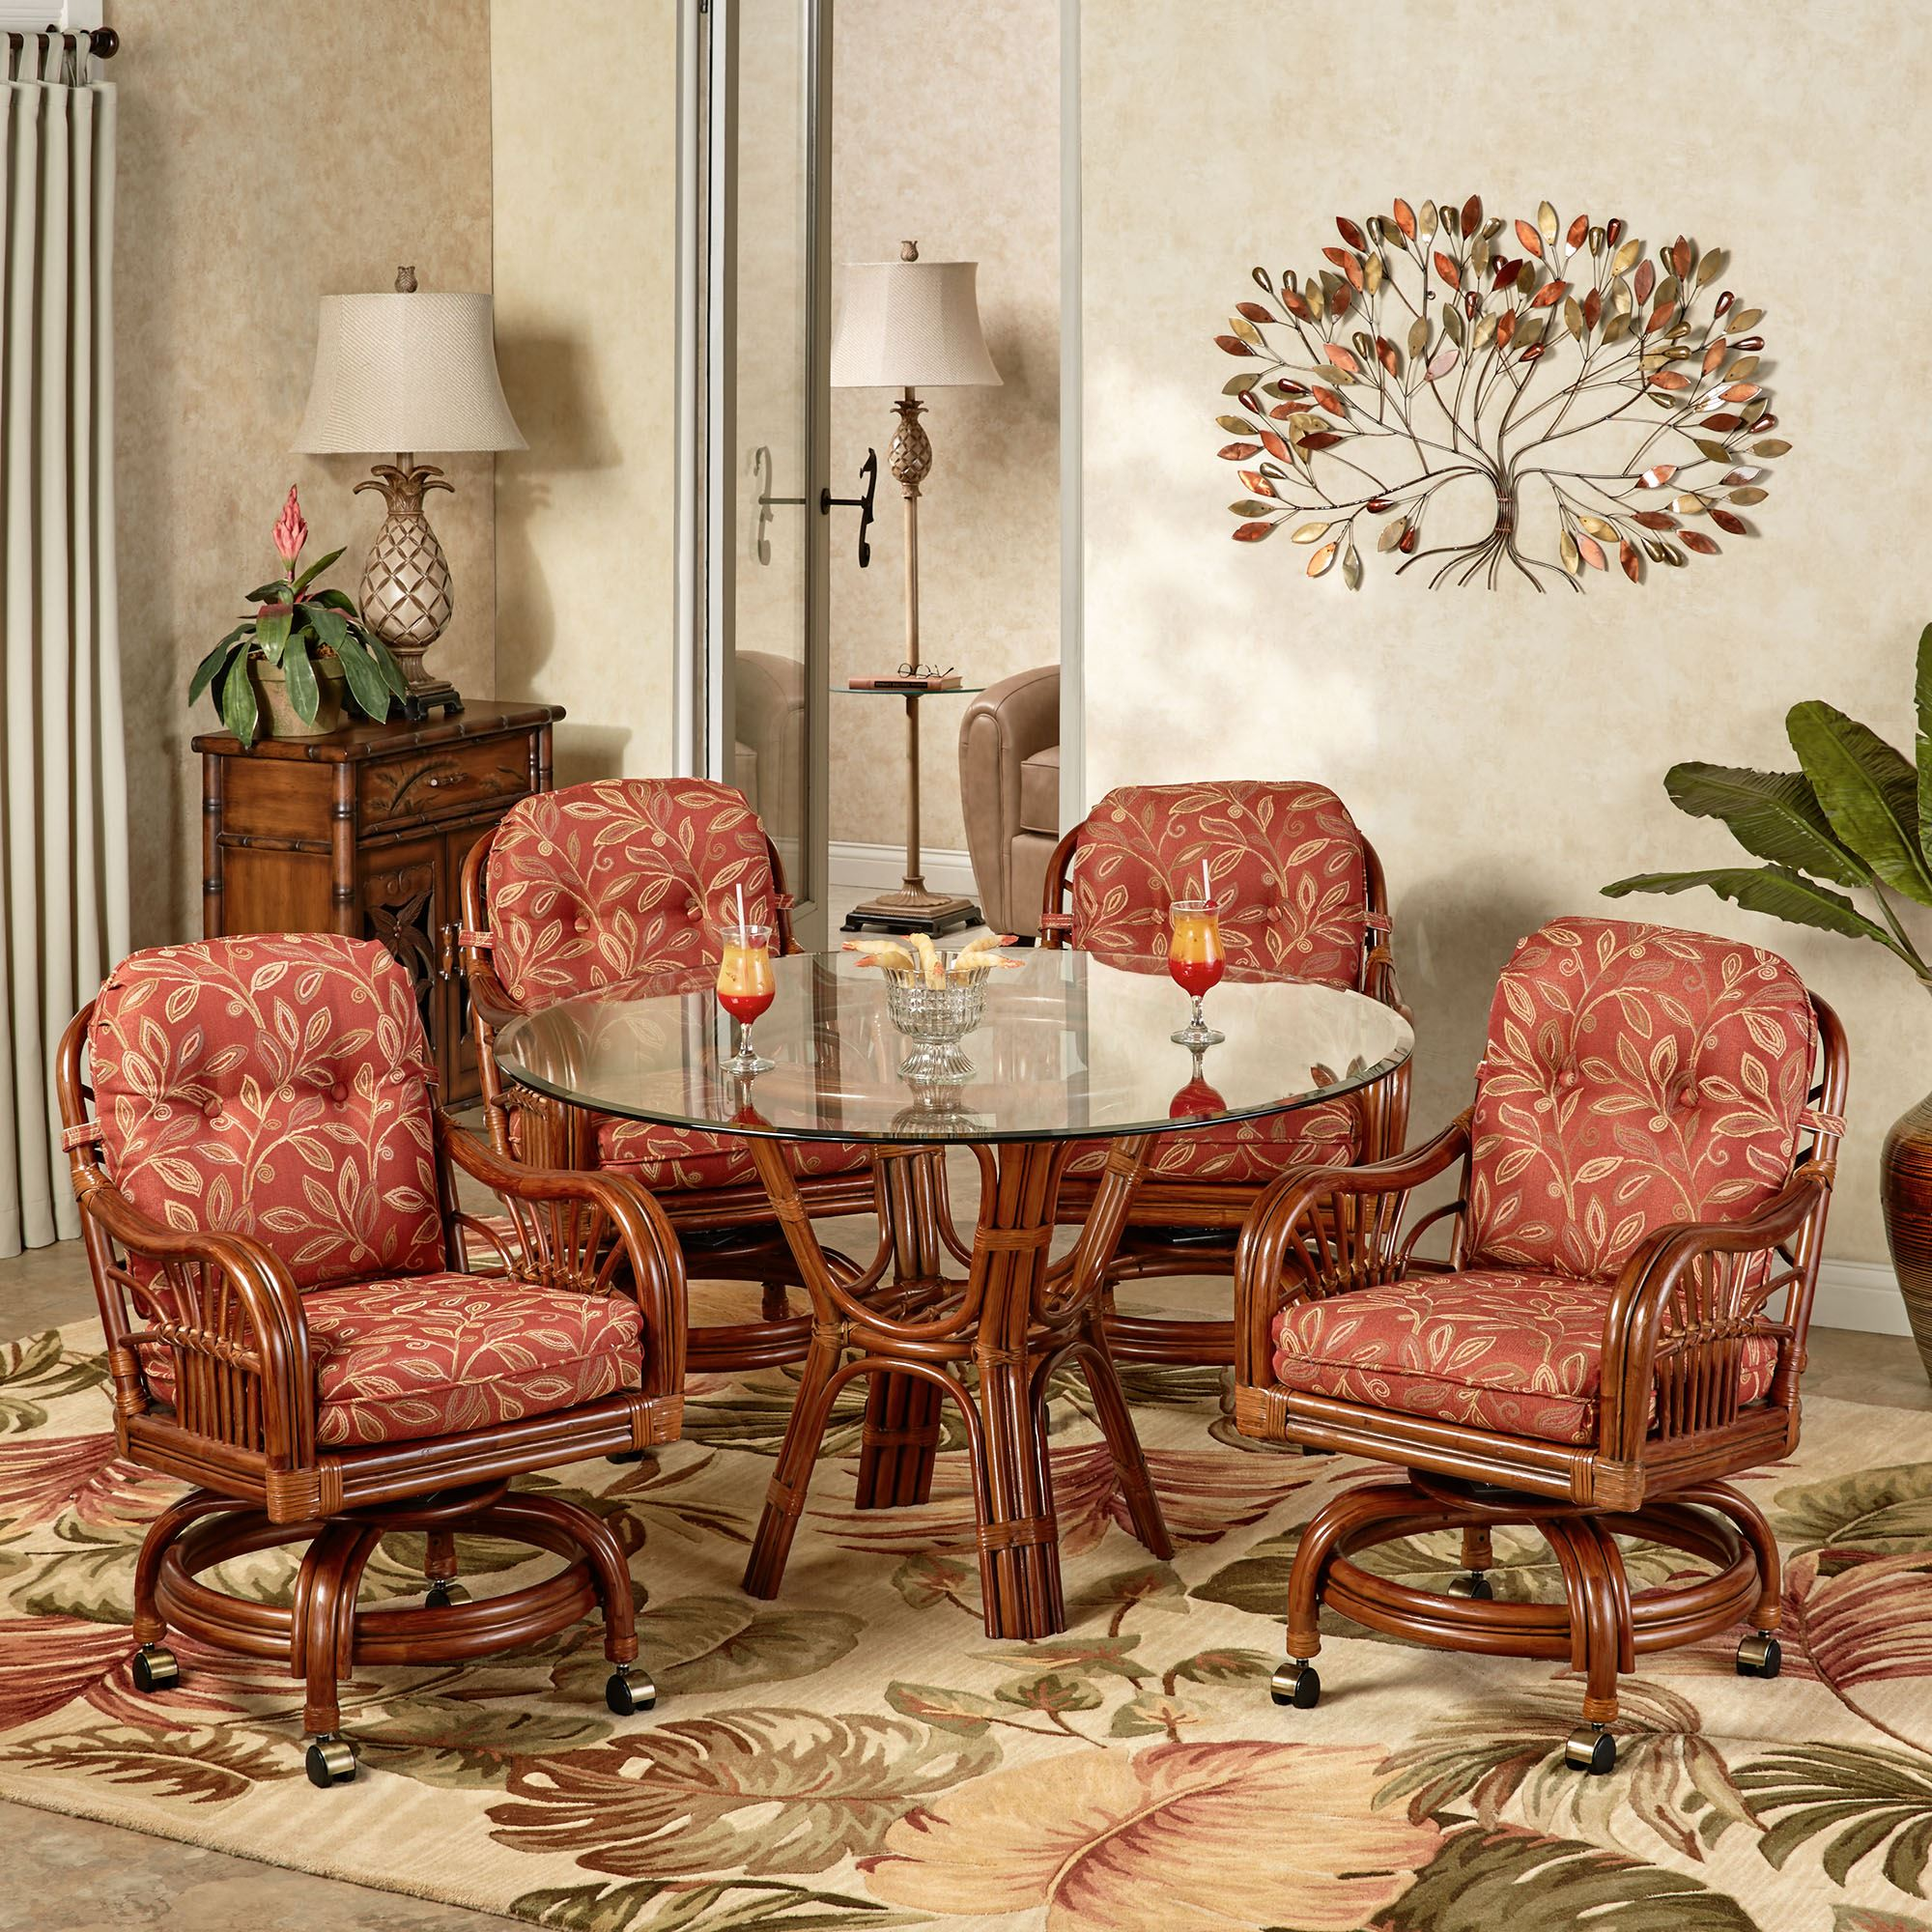 Overview. The Leikela Papaya Medley Castered Tropical Dining Furniture ...